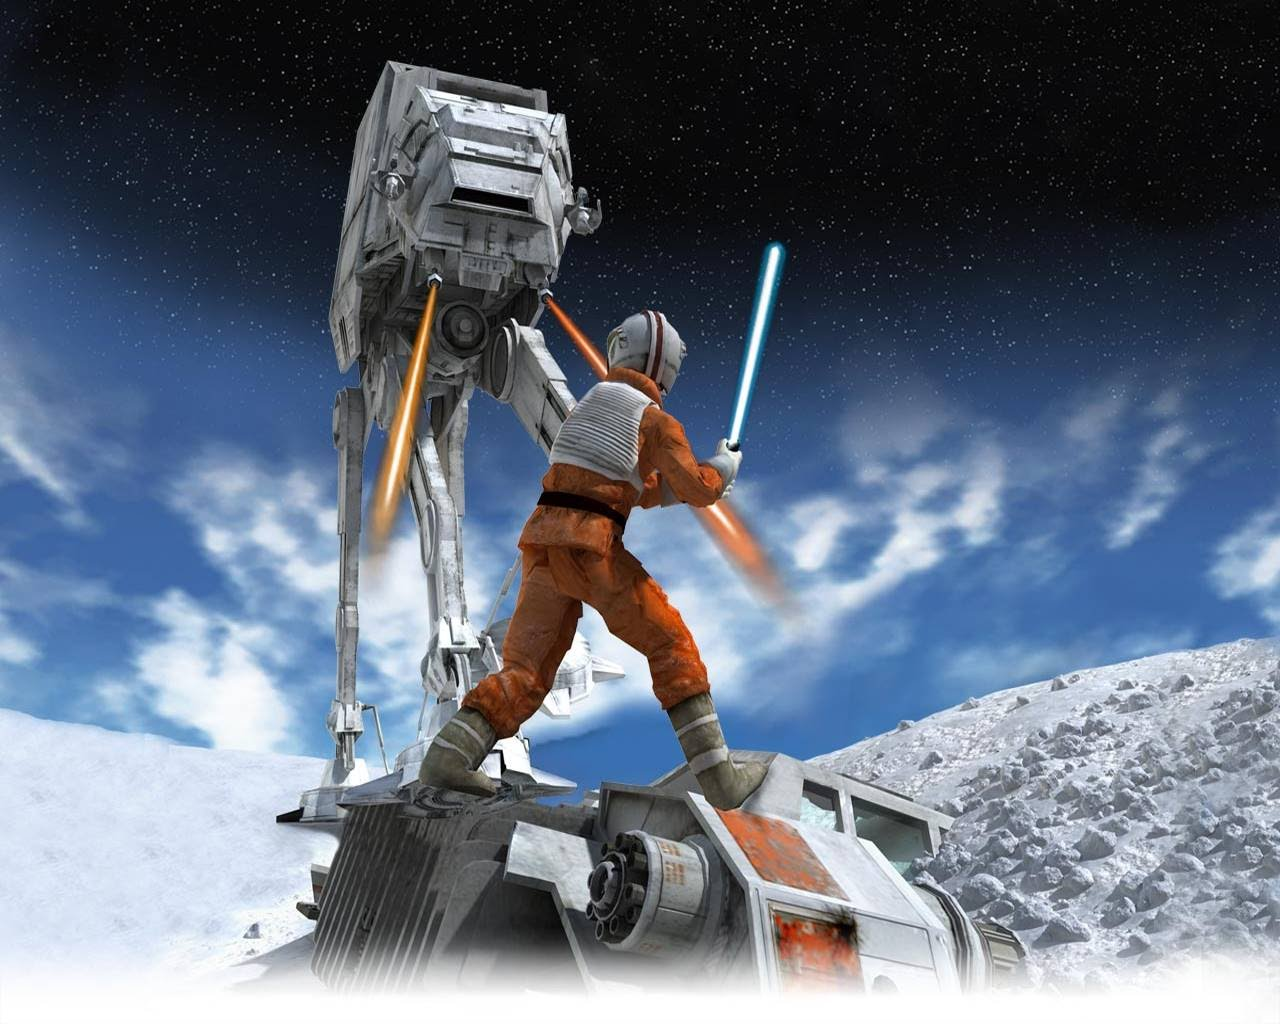 Free Download Star Wars Hoth Wallpapers Wallpaper Star Wars